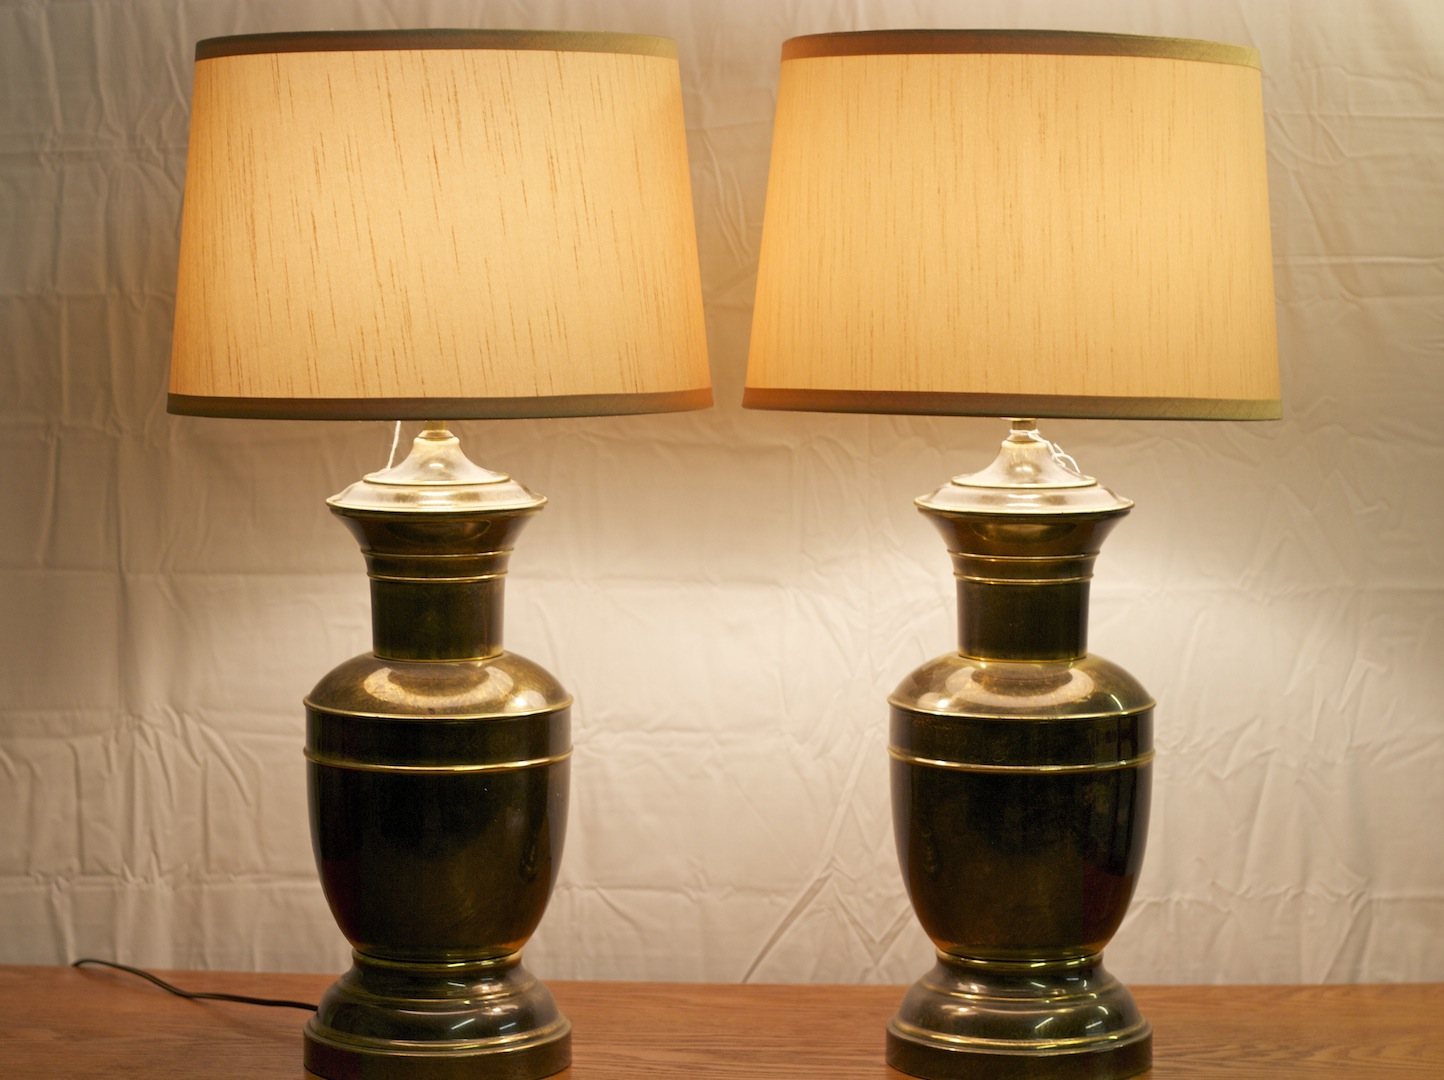 1940s Lamp Shades. 25 Vintage Table Lamps For A Retro Home